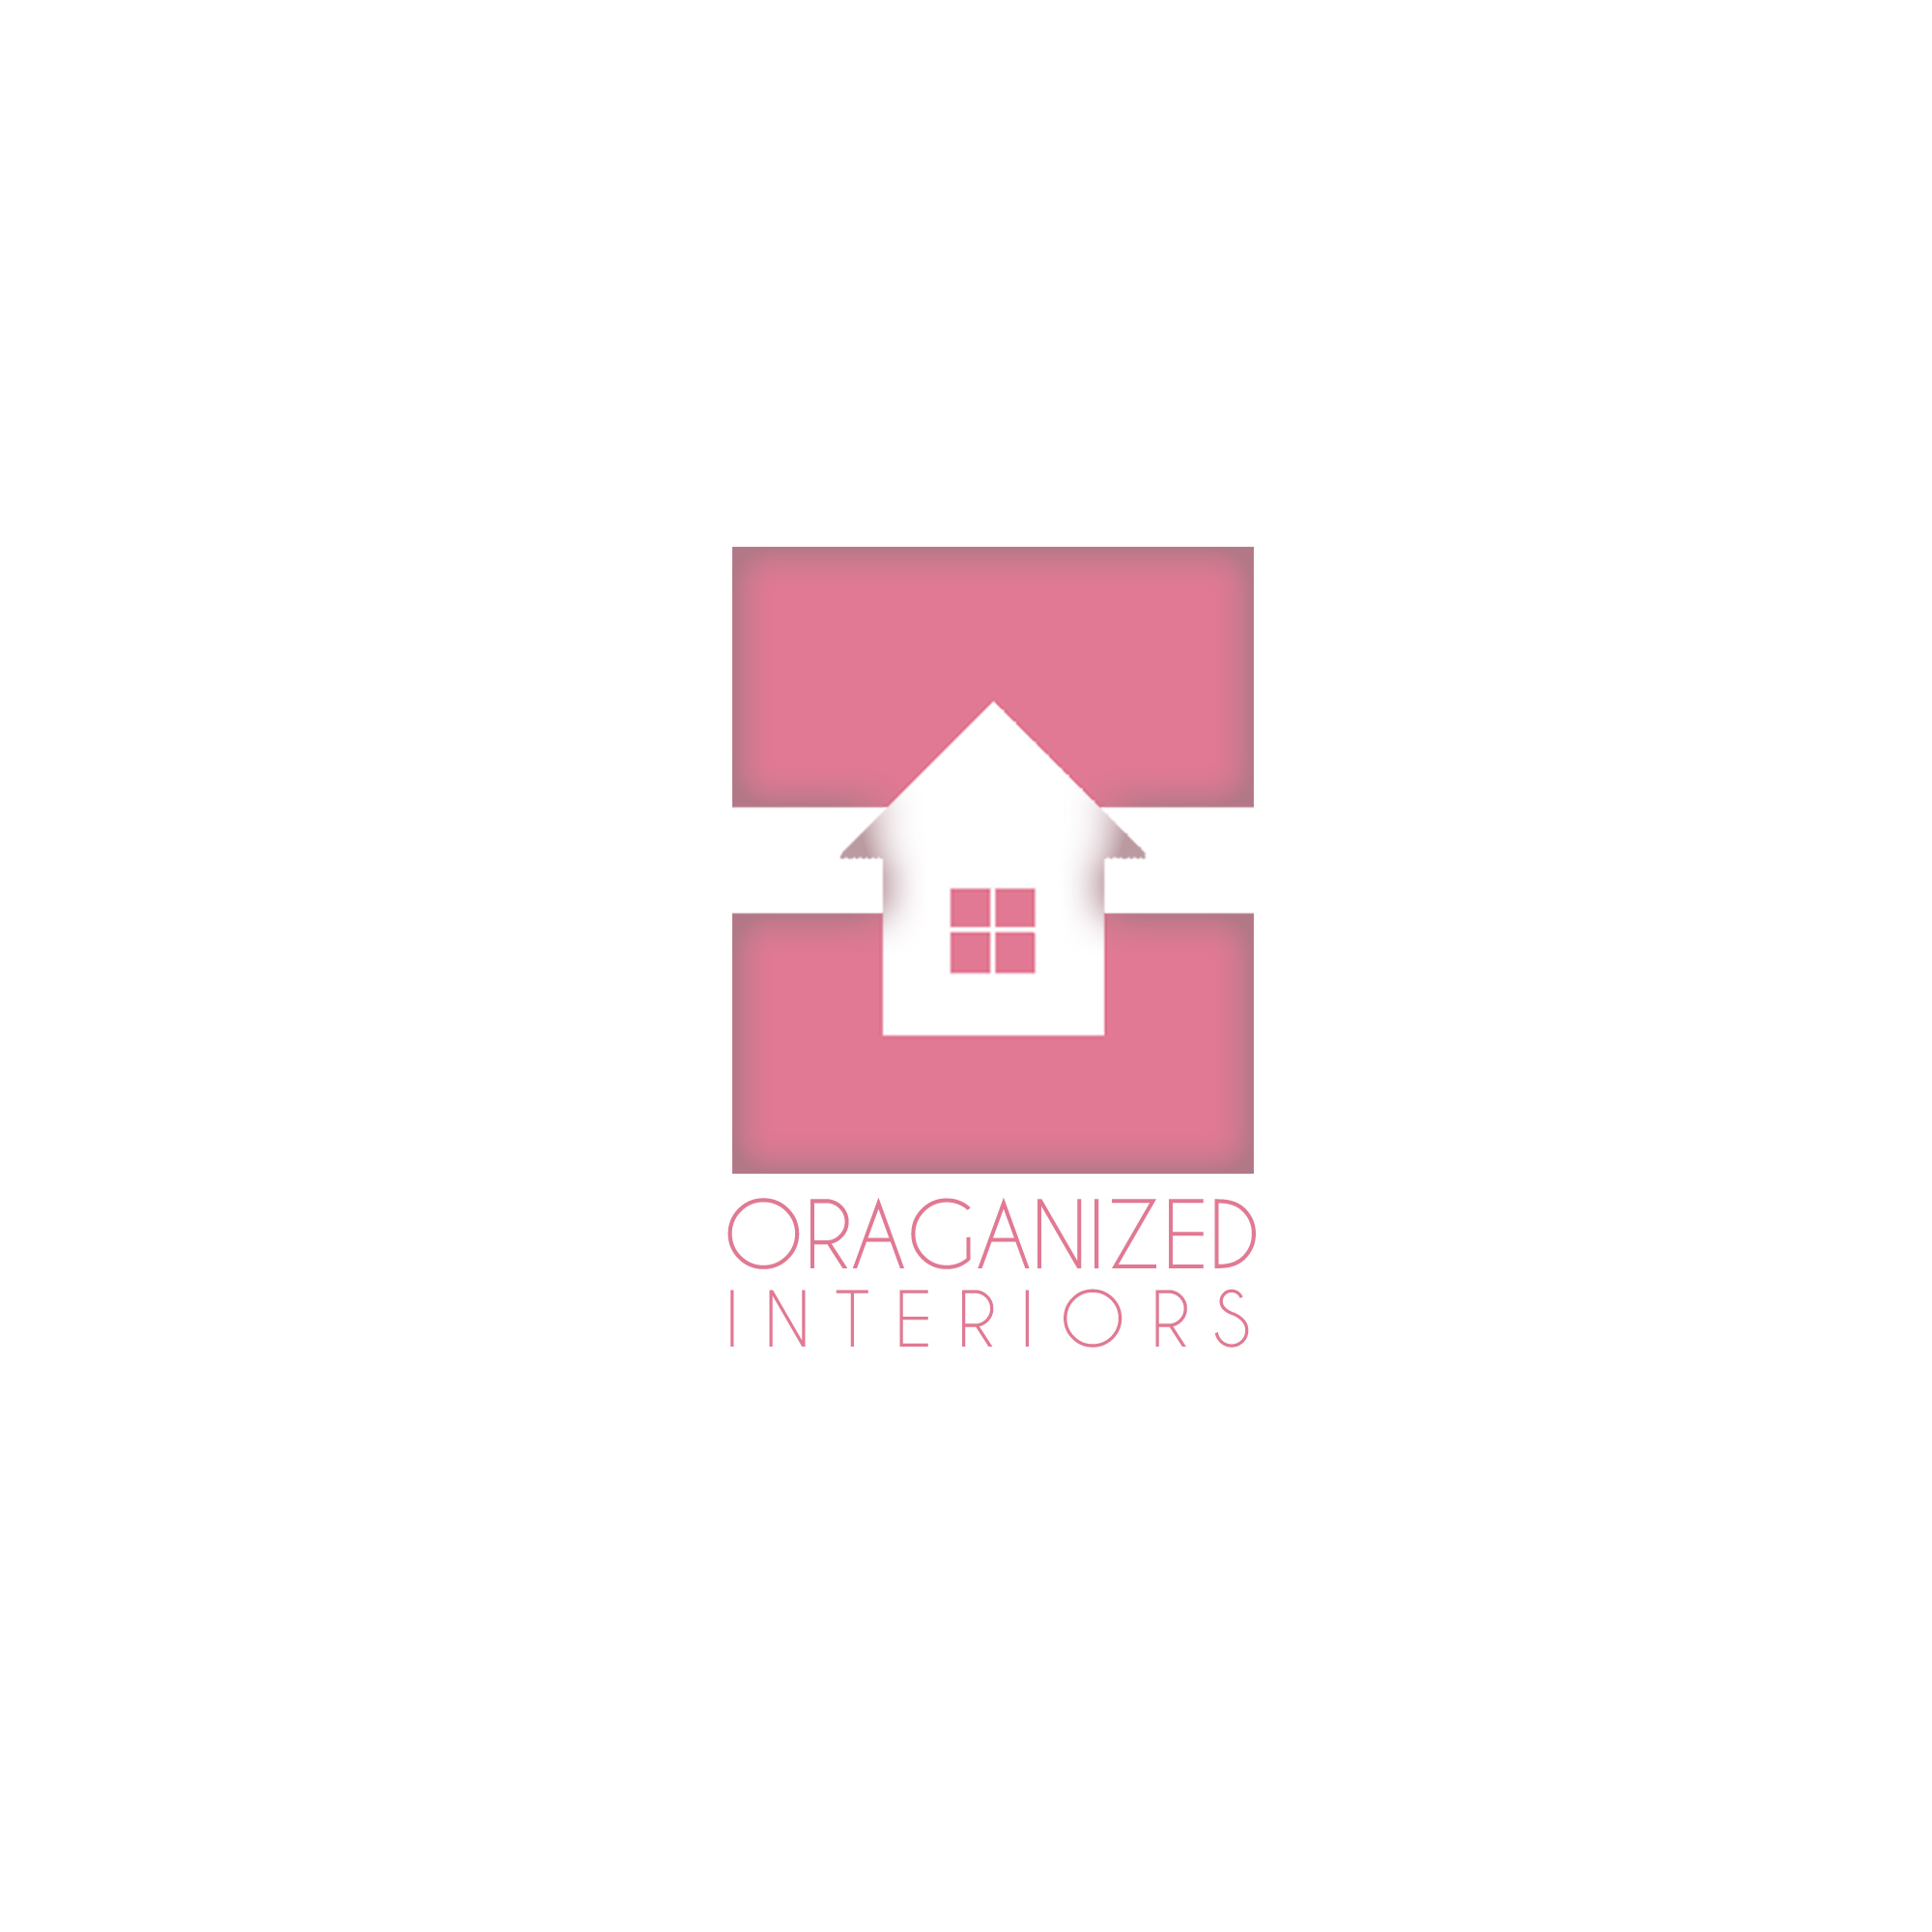 Logo Design by Utkarsh Bhandari - Entry No. 108 in the Logo Design Contest Imaginative Logo Design for Organized Interiors.